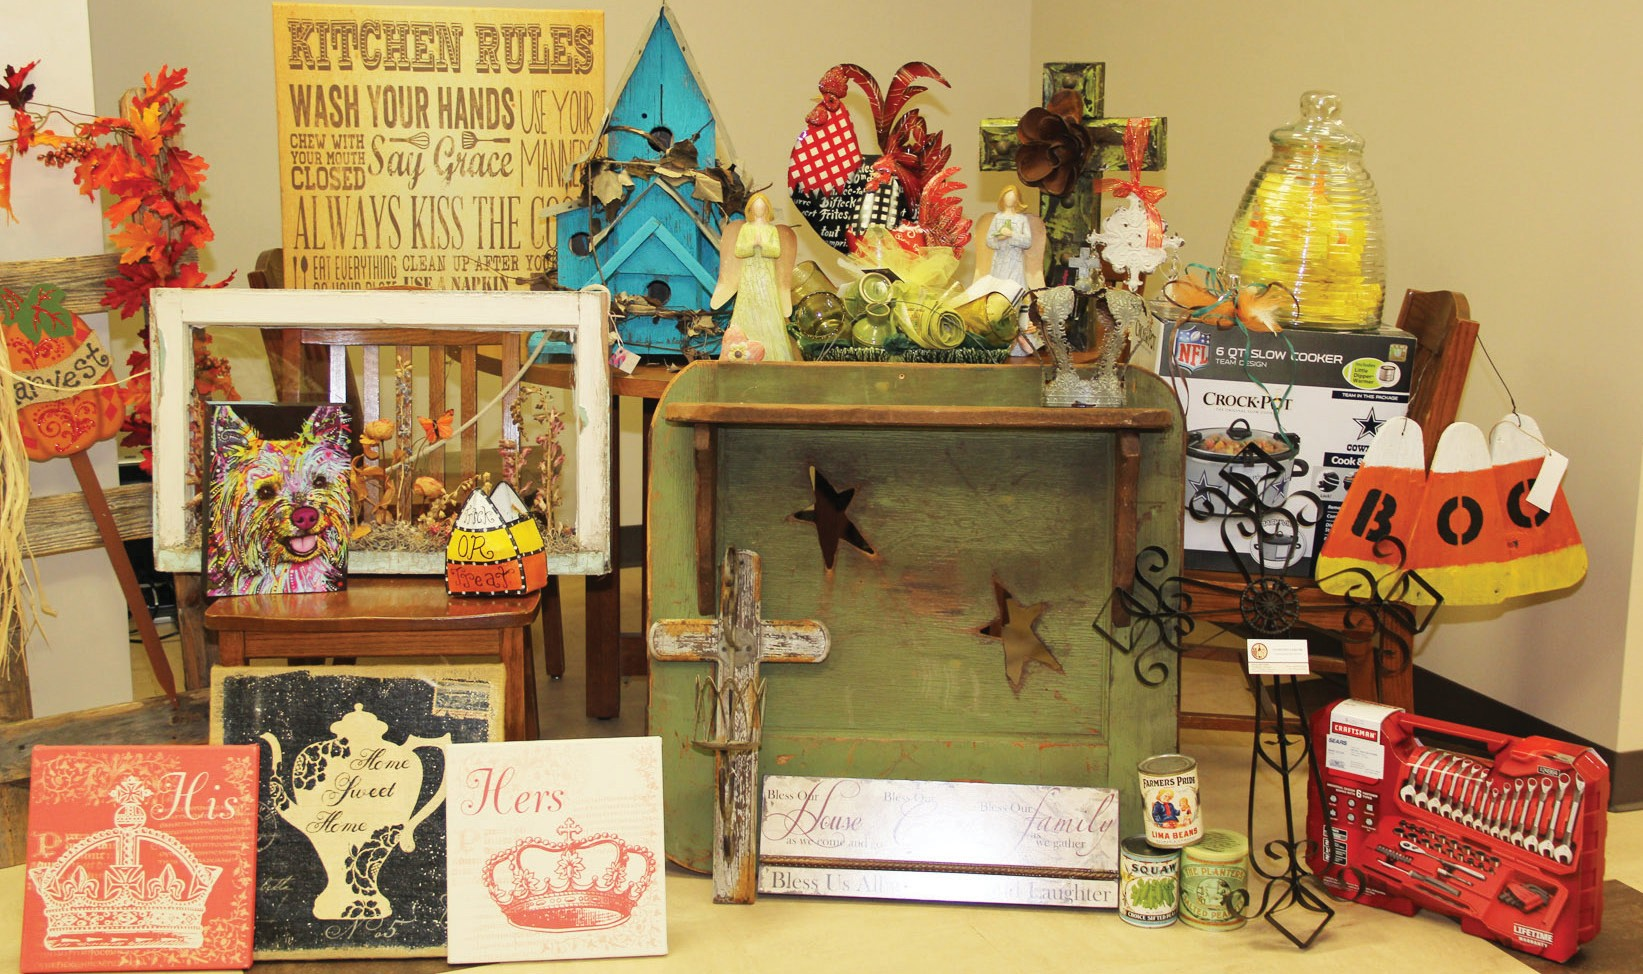 The Friends of the Pleasanton Library have gathered quite the silent auction items for their annual event next Thursday, September 24 at the Pleasanton Civic Center.